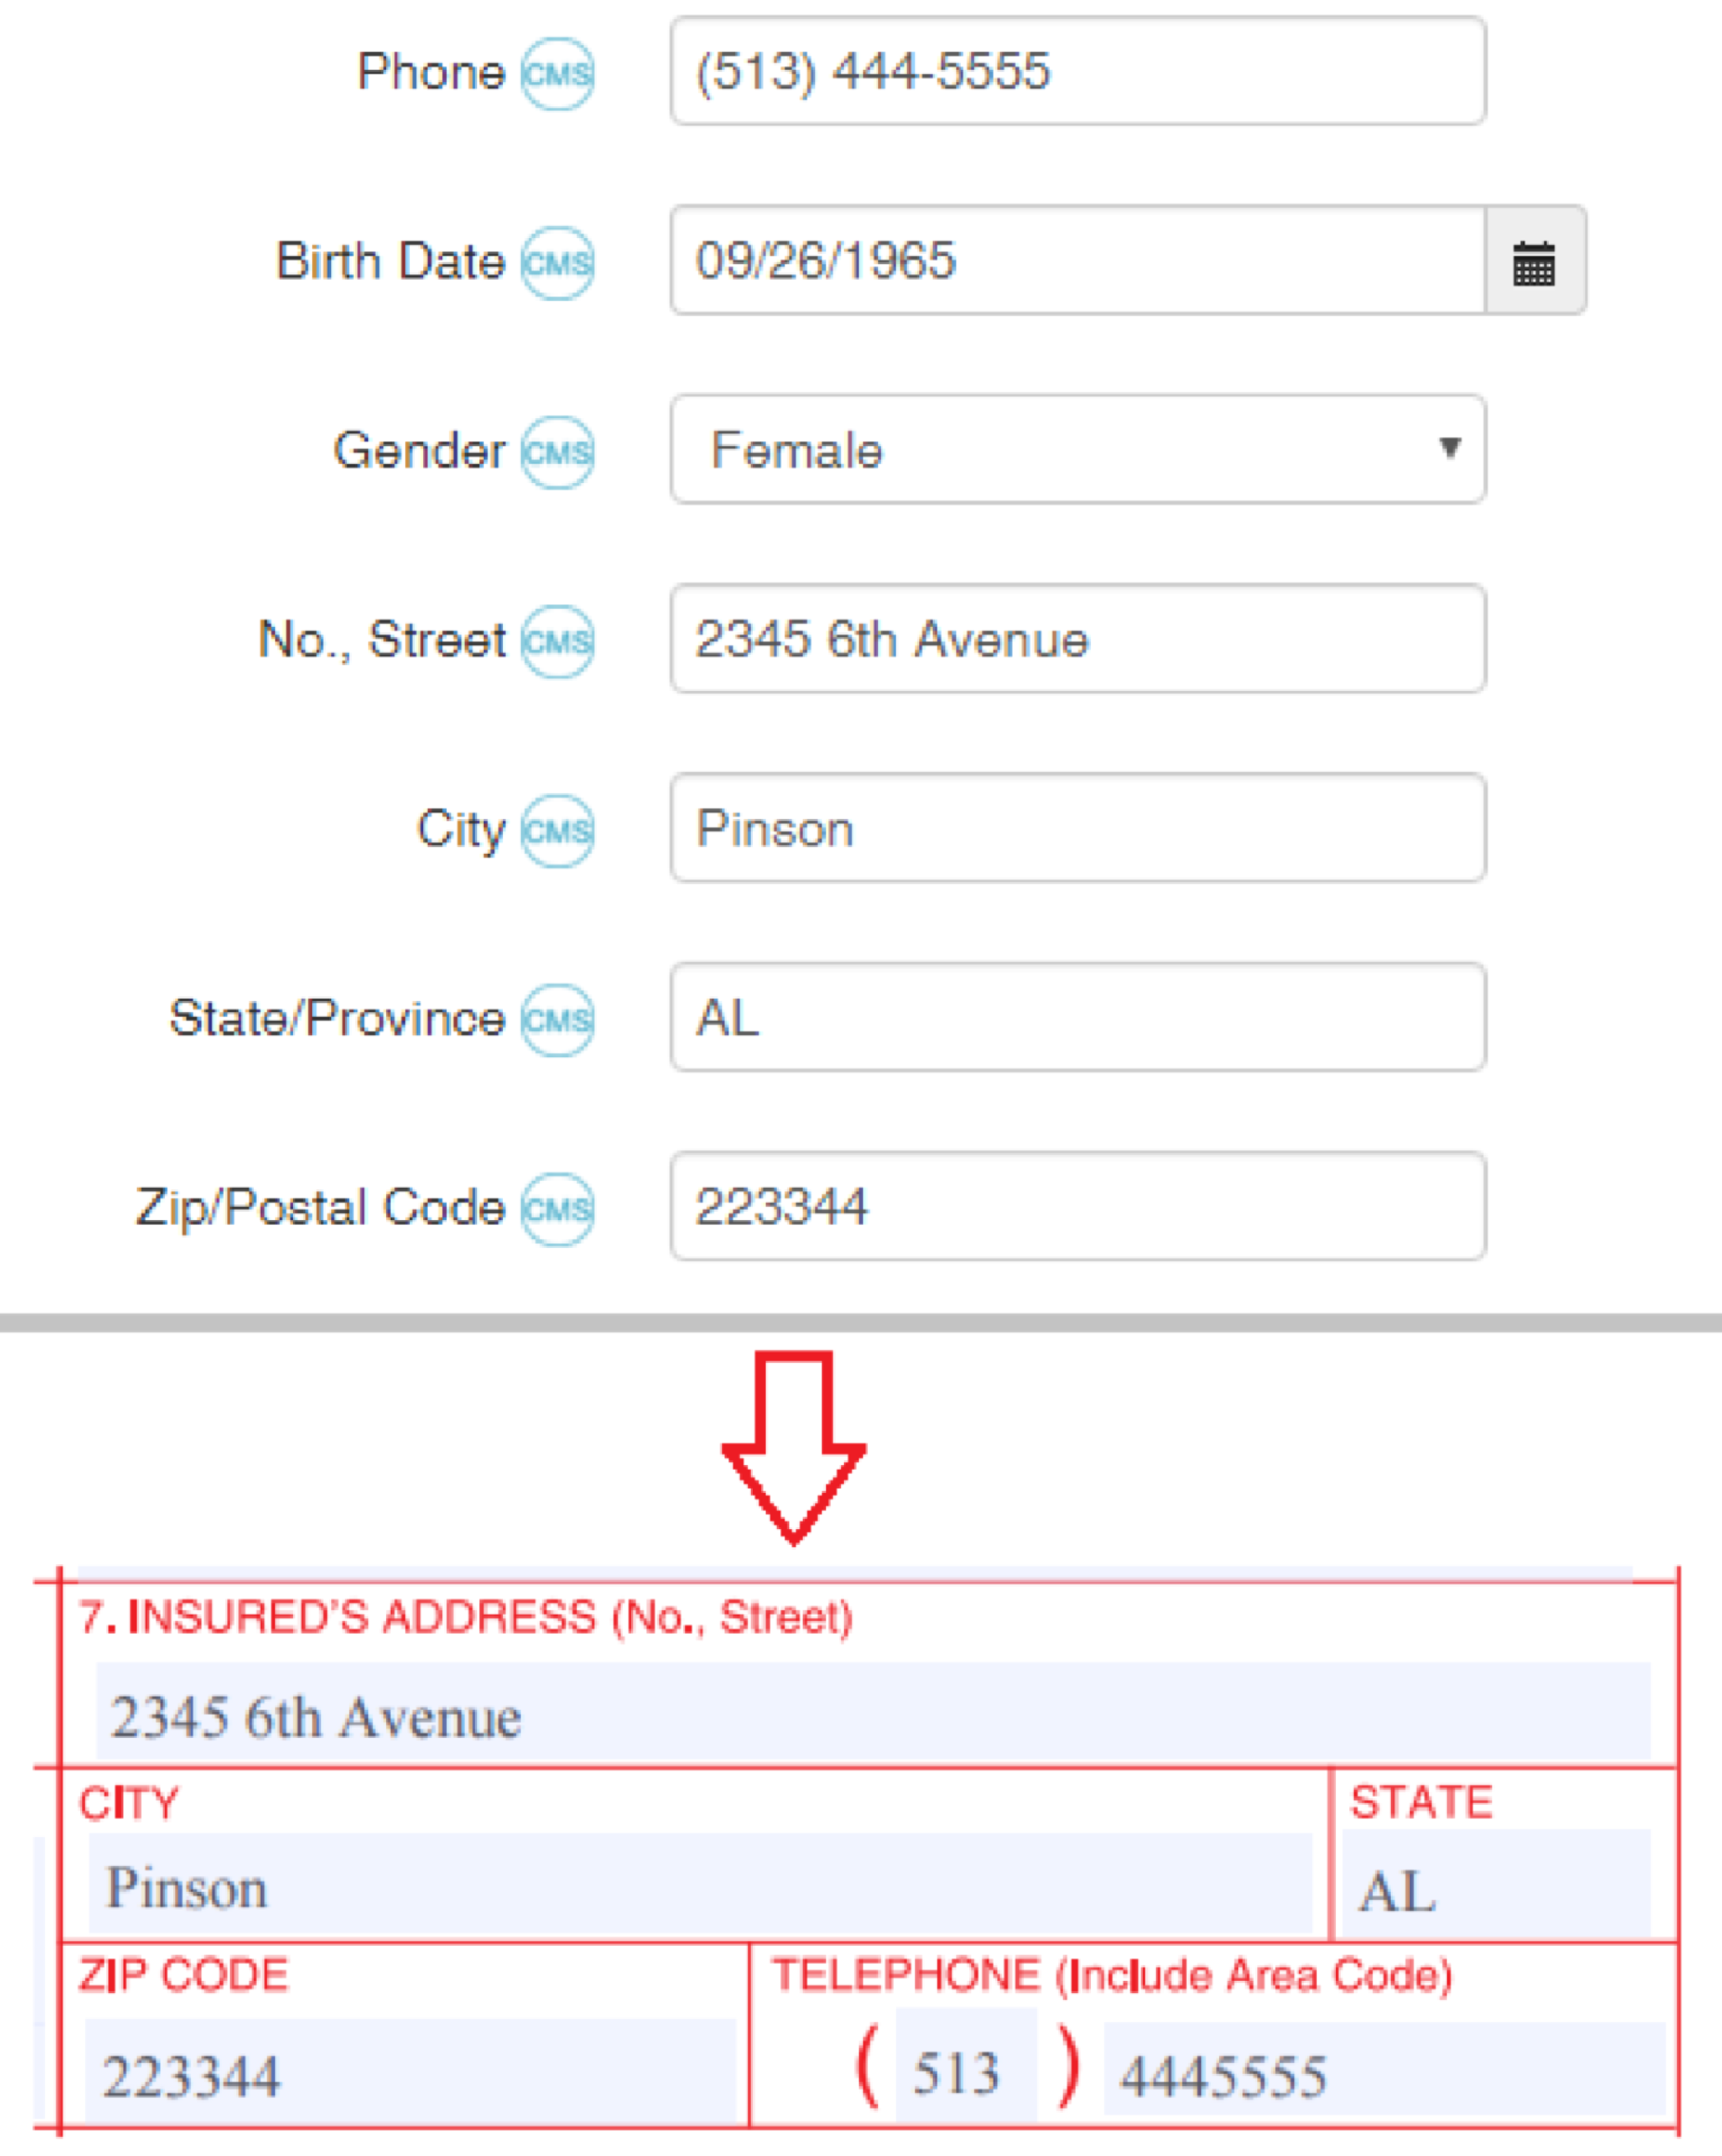 Cms1500 claim form guide theranest support center if relationship to insured is self then the data is taken from the client details page otherwise the data is taken from the info about insured block thecheapjerseys Images